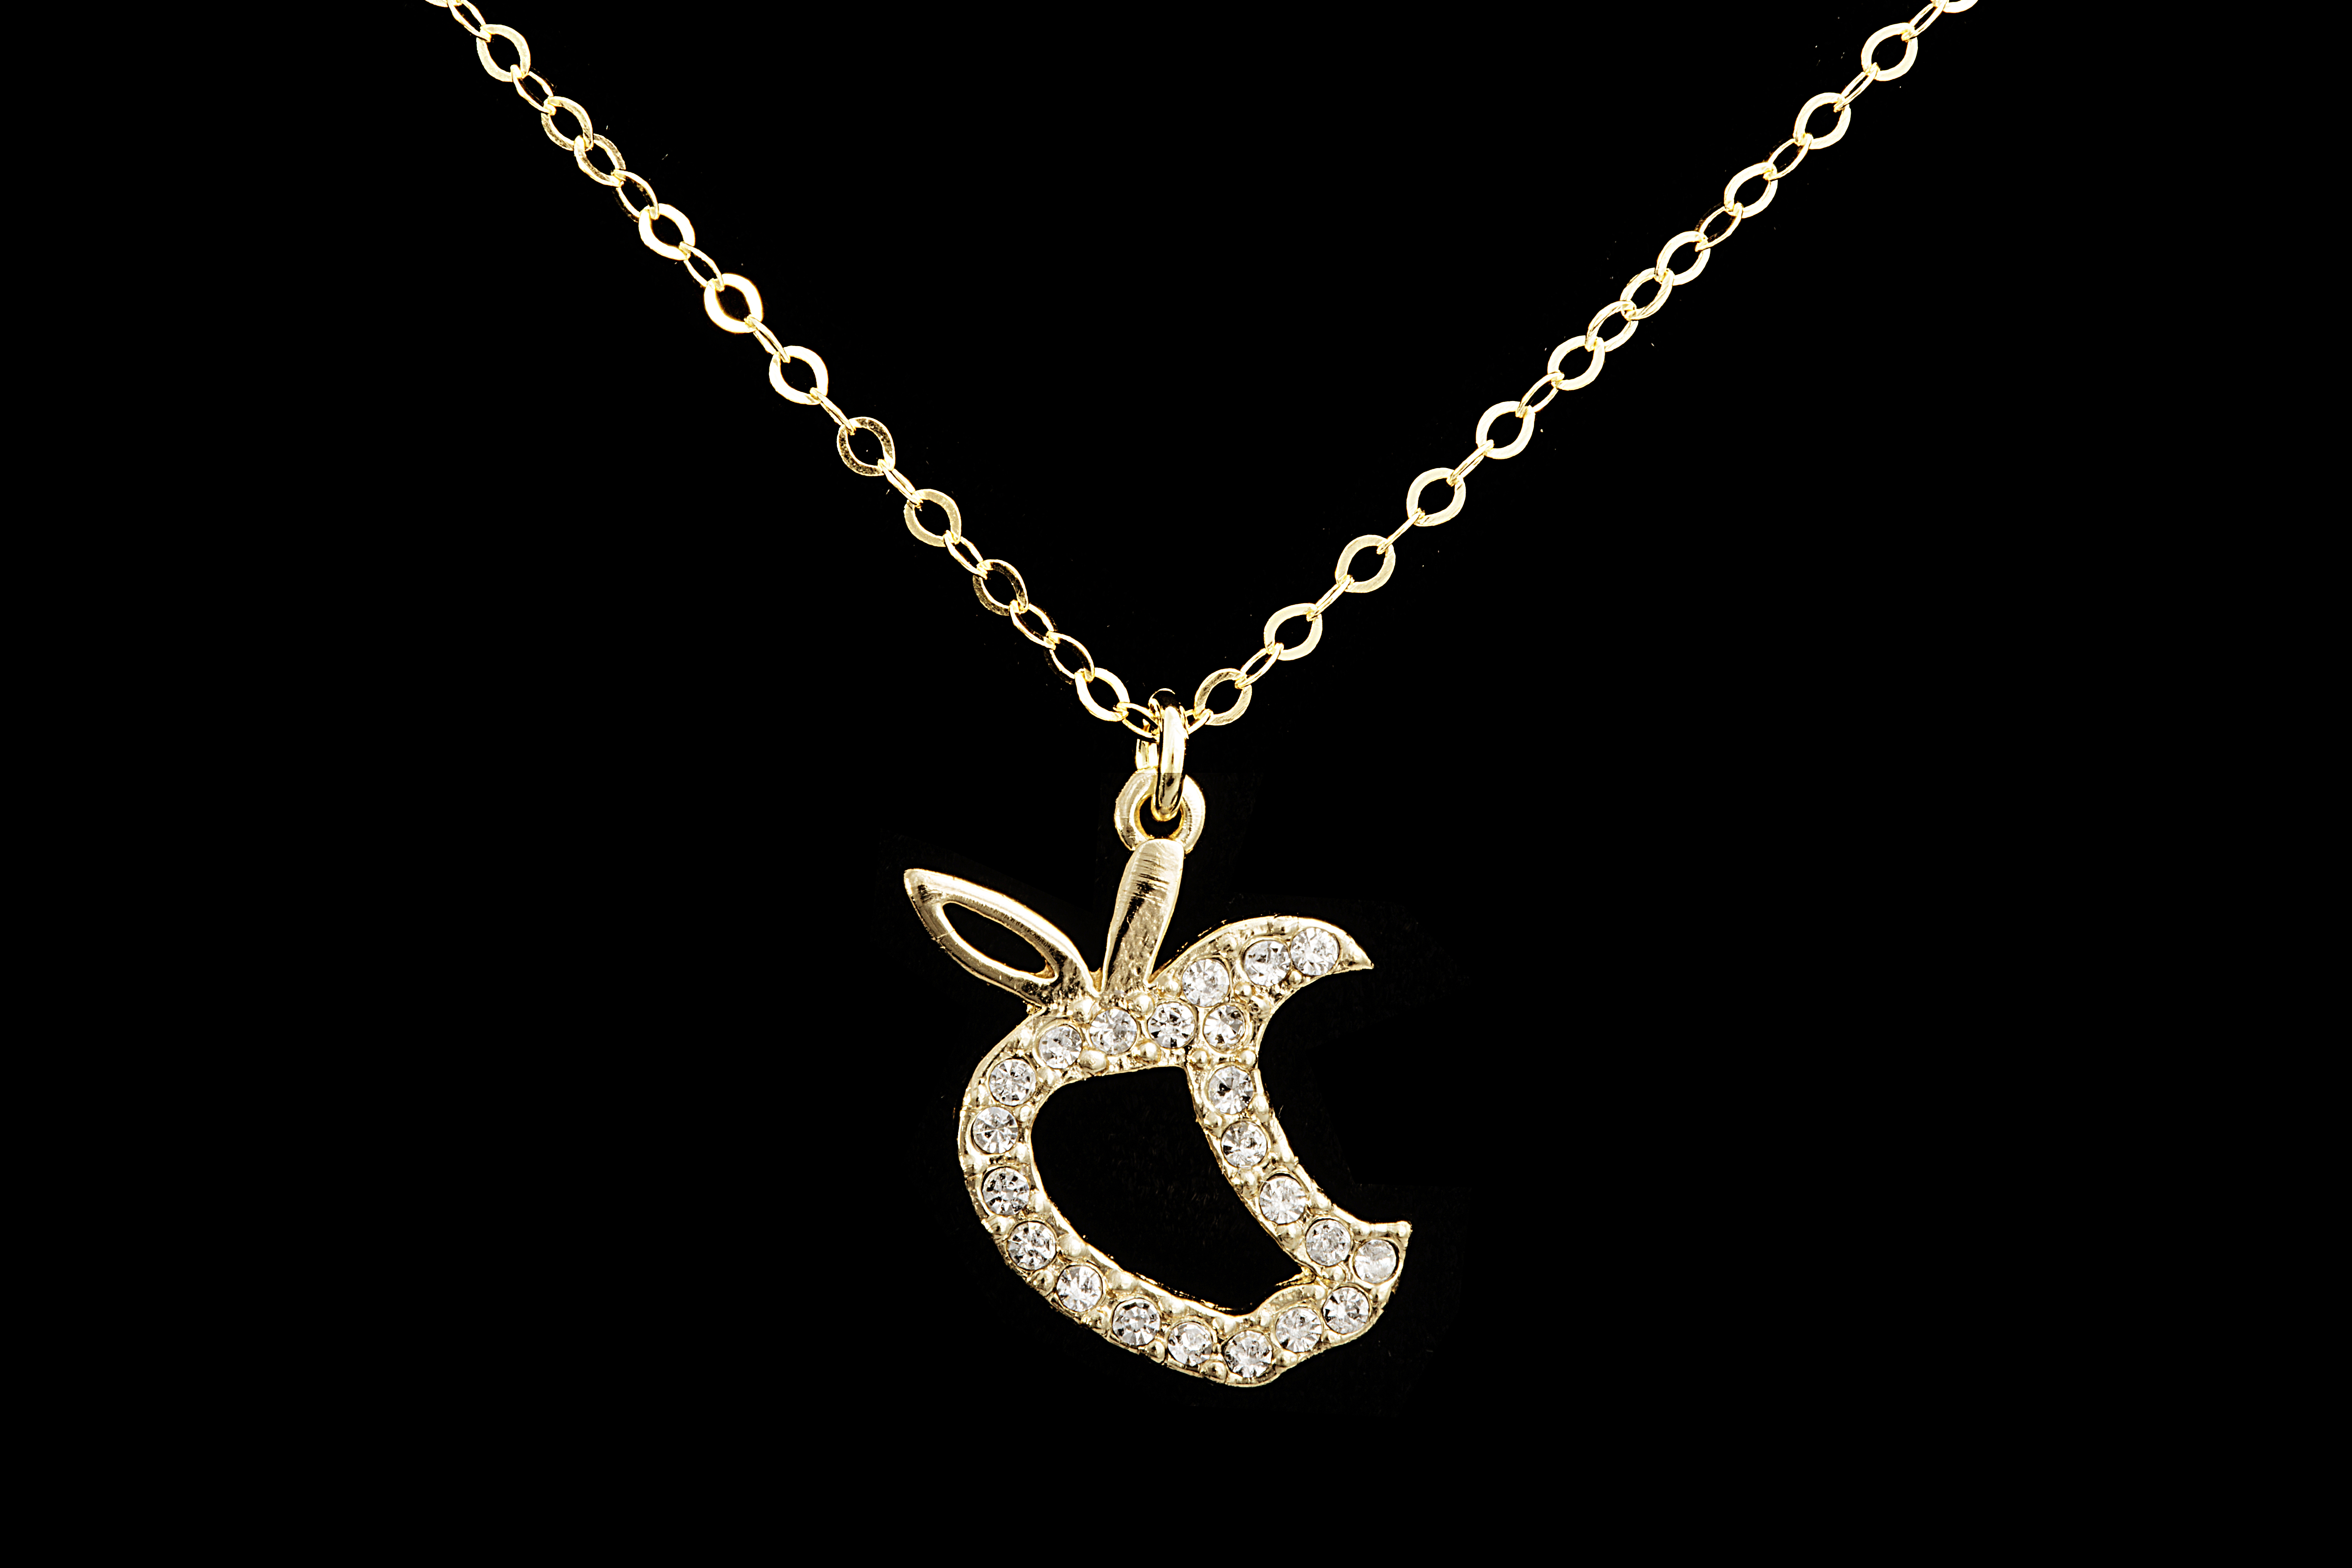 bts jewelry apple pendant apple pendant mozeypictures Image collections